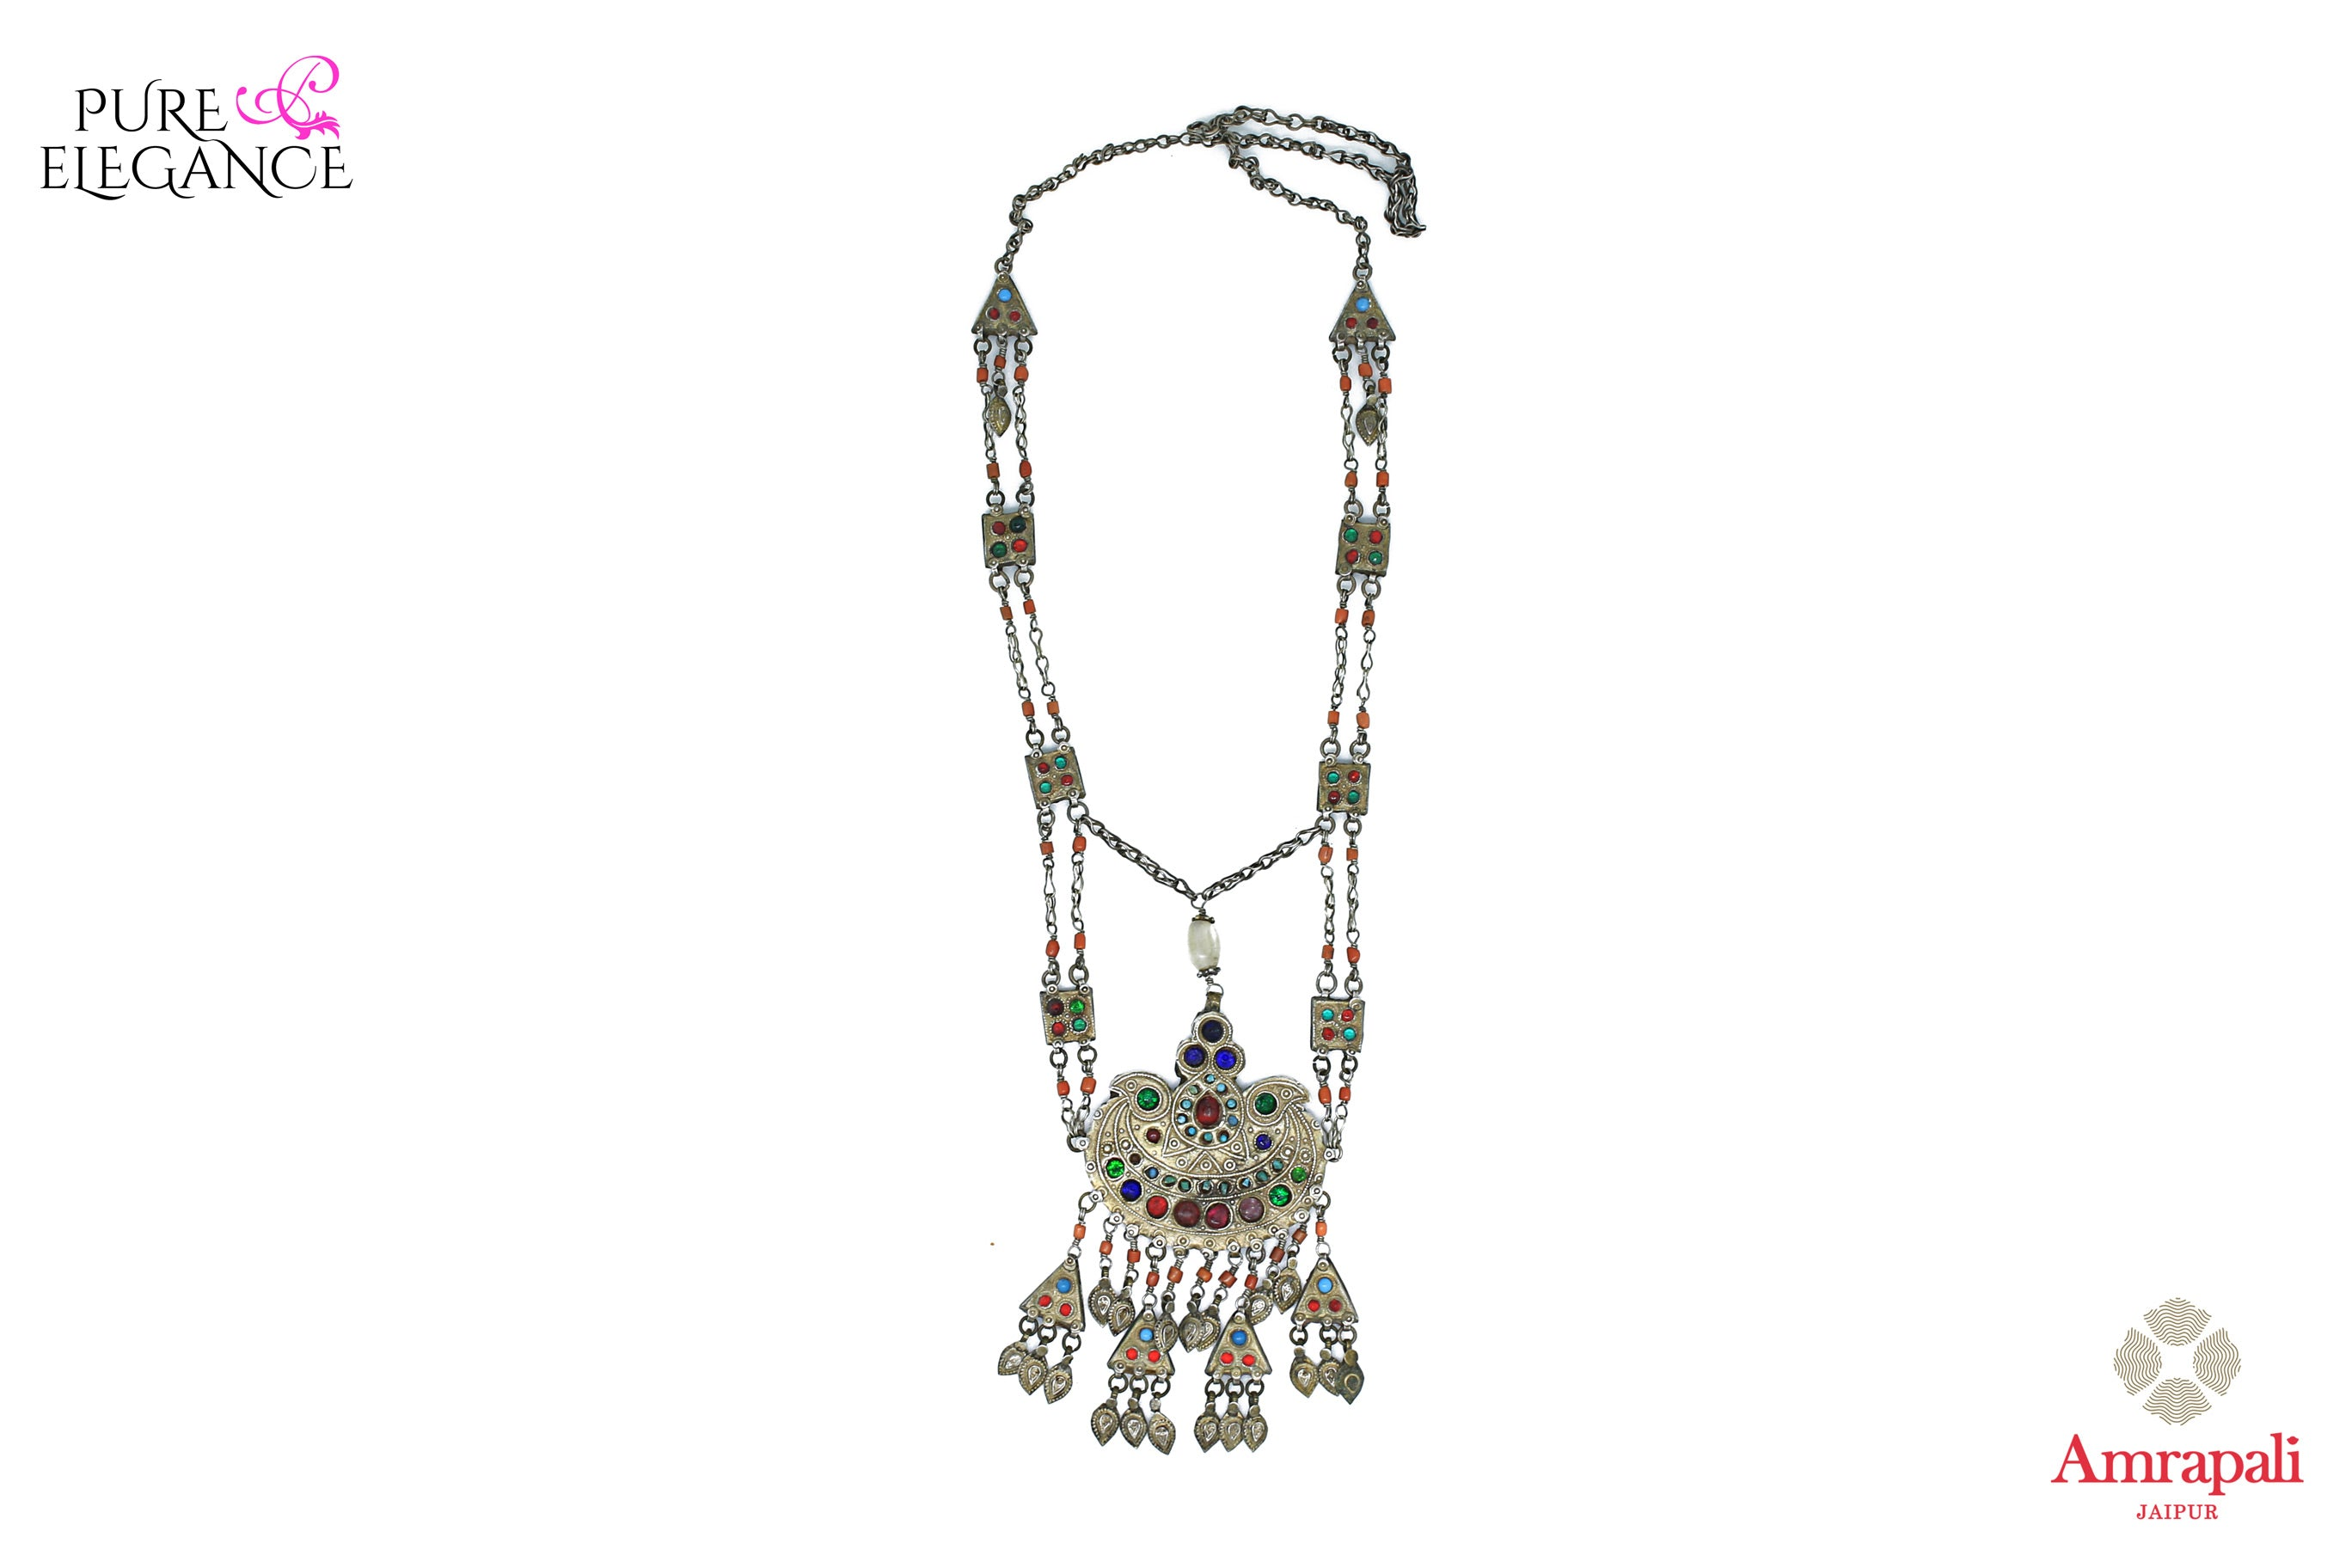 Buy Amrapali silver banjara necklace online in USA with colored glass and beads. Get your hands on an alluring range of Indian silver necklaces from Amrapali in USA. Add extra edge to your ethnic look with ethnic silver jewelry available at Pure Elegance Indian fashion store in USA.-front view